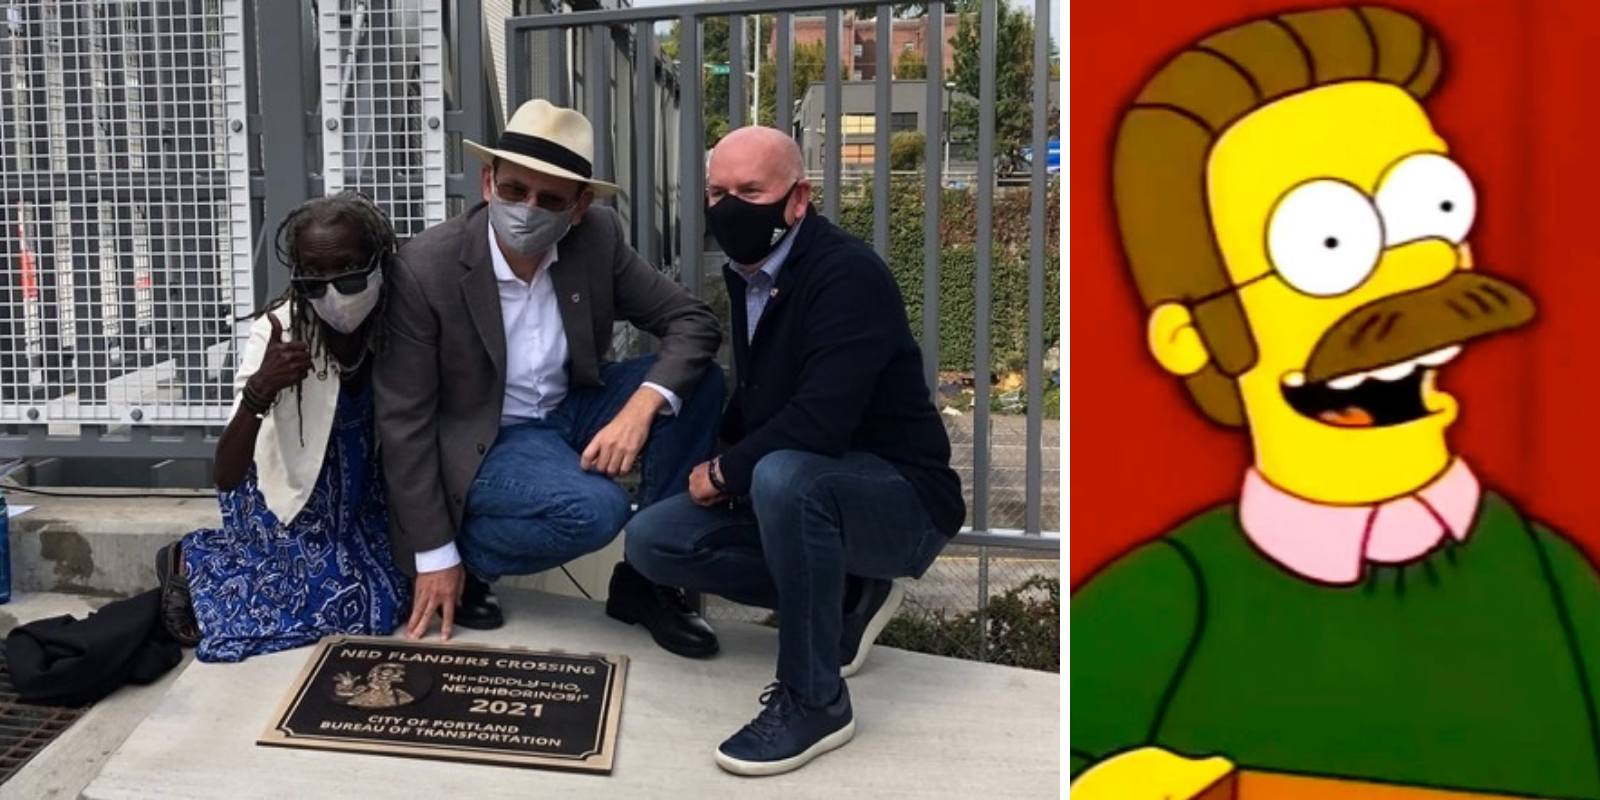 Portland names new bridge after Simpsons character Ned Flanders